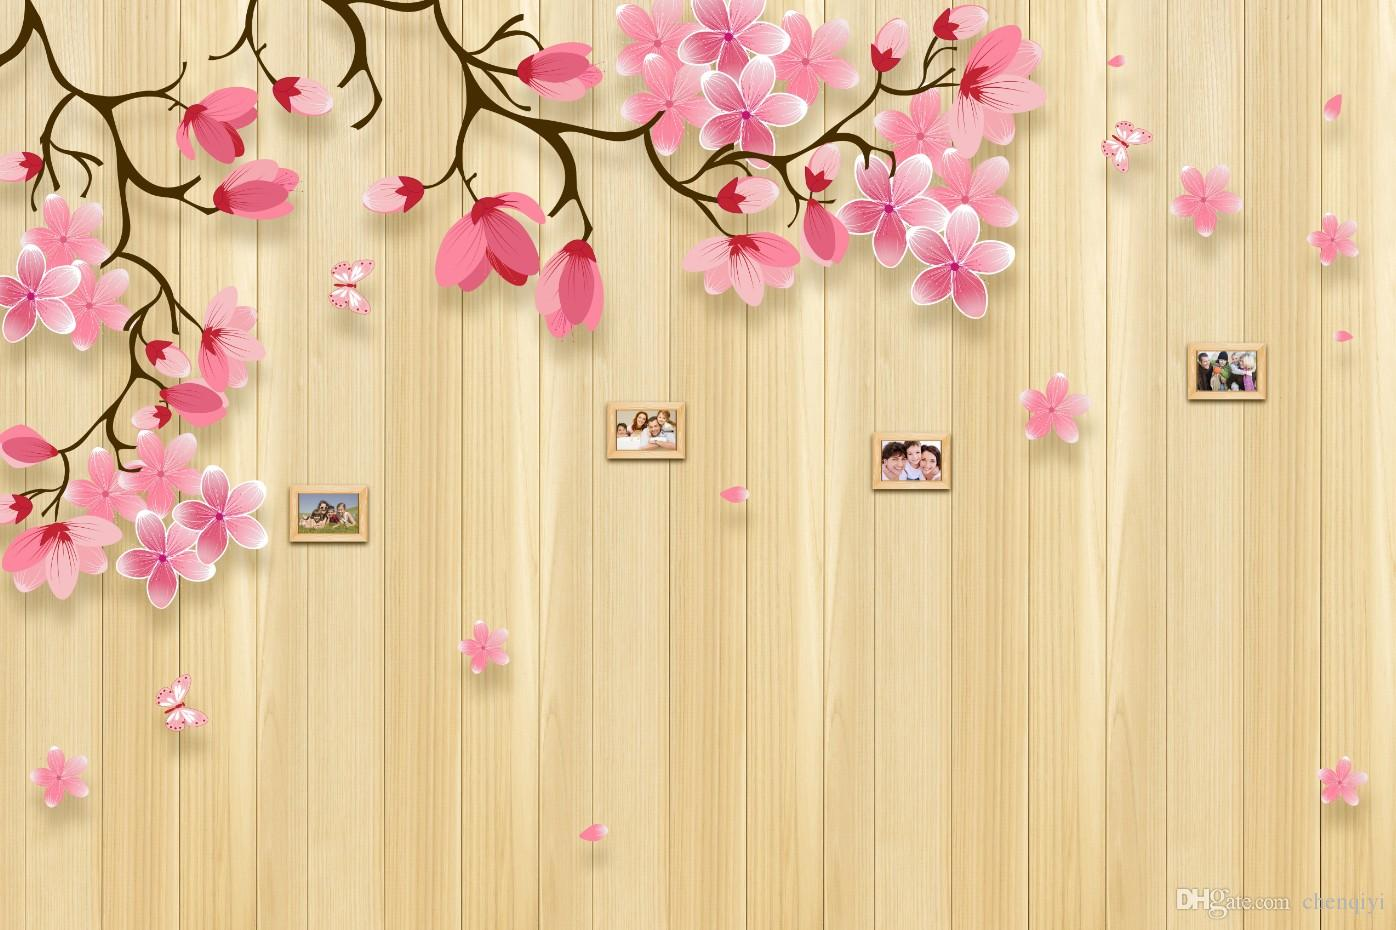 custom large murals fabric wallpaper 3d wall paper sitting room custom large murals fabric wallpaper 3d wall paper sitting room bedroom tv sofa background 3d312 art abstract chinese fashion modern flowers widescreen